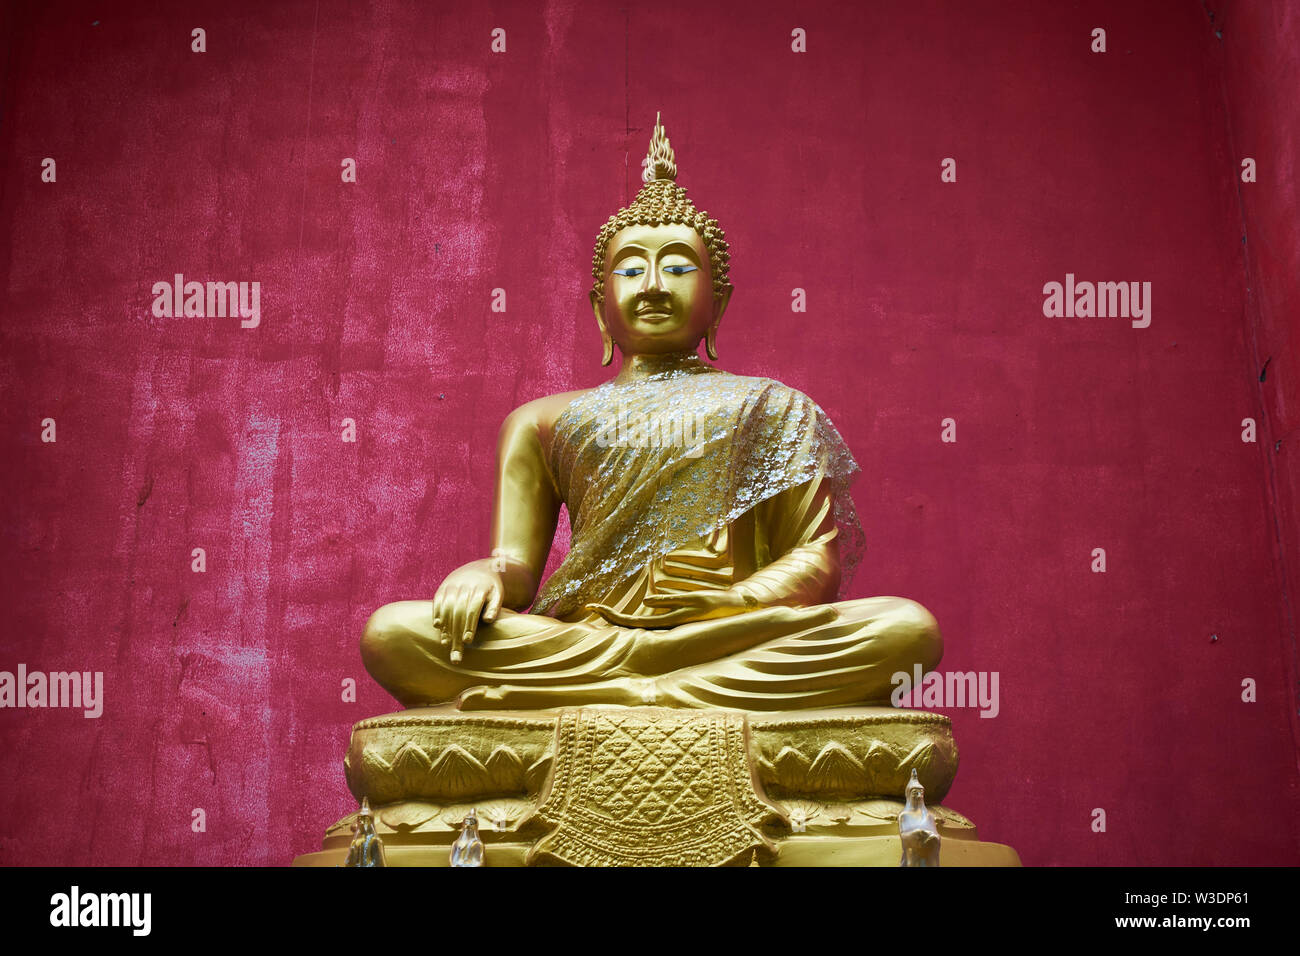 Sitting Buddha in rich red alcove at Wat Buppharam in Chiang Mai, Thailand. Stock Photo